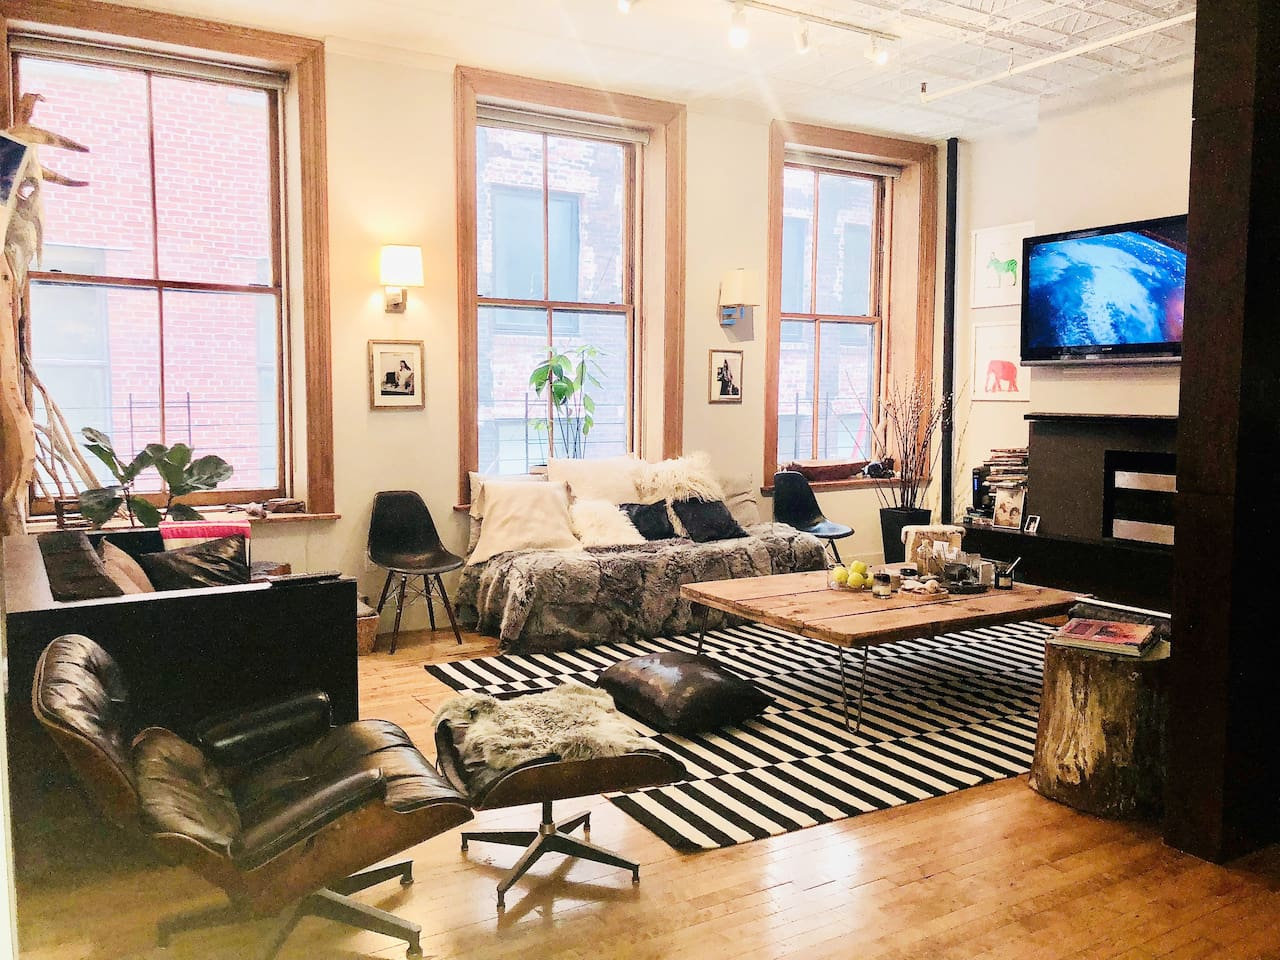 LIVING ROOM WITH GAS FIREPLACE AND NETFLIX, WIFI,FUR SOFA COUCH BED